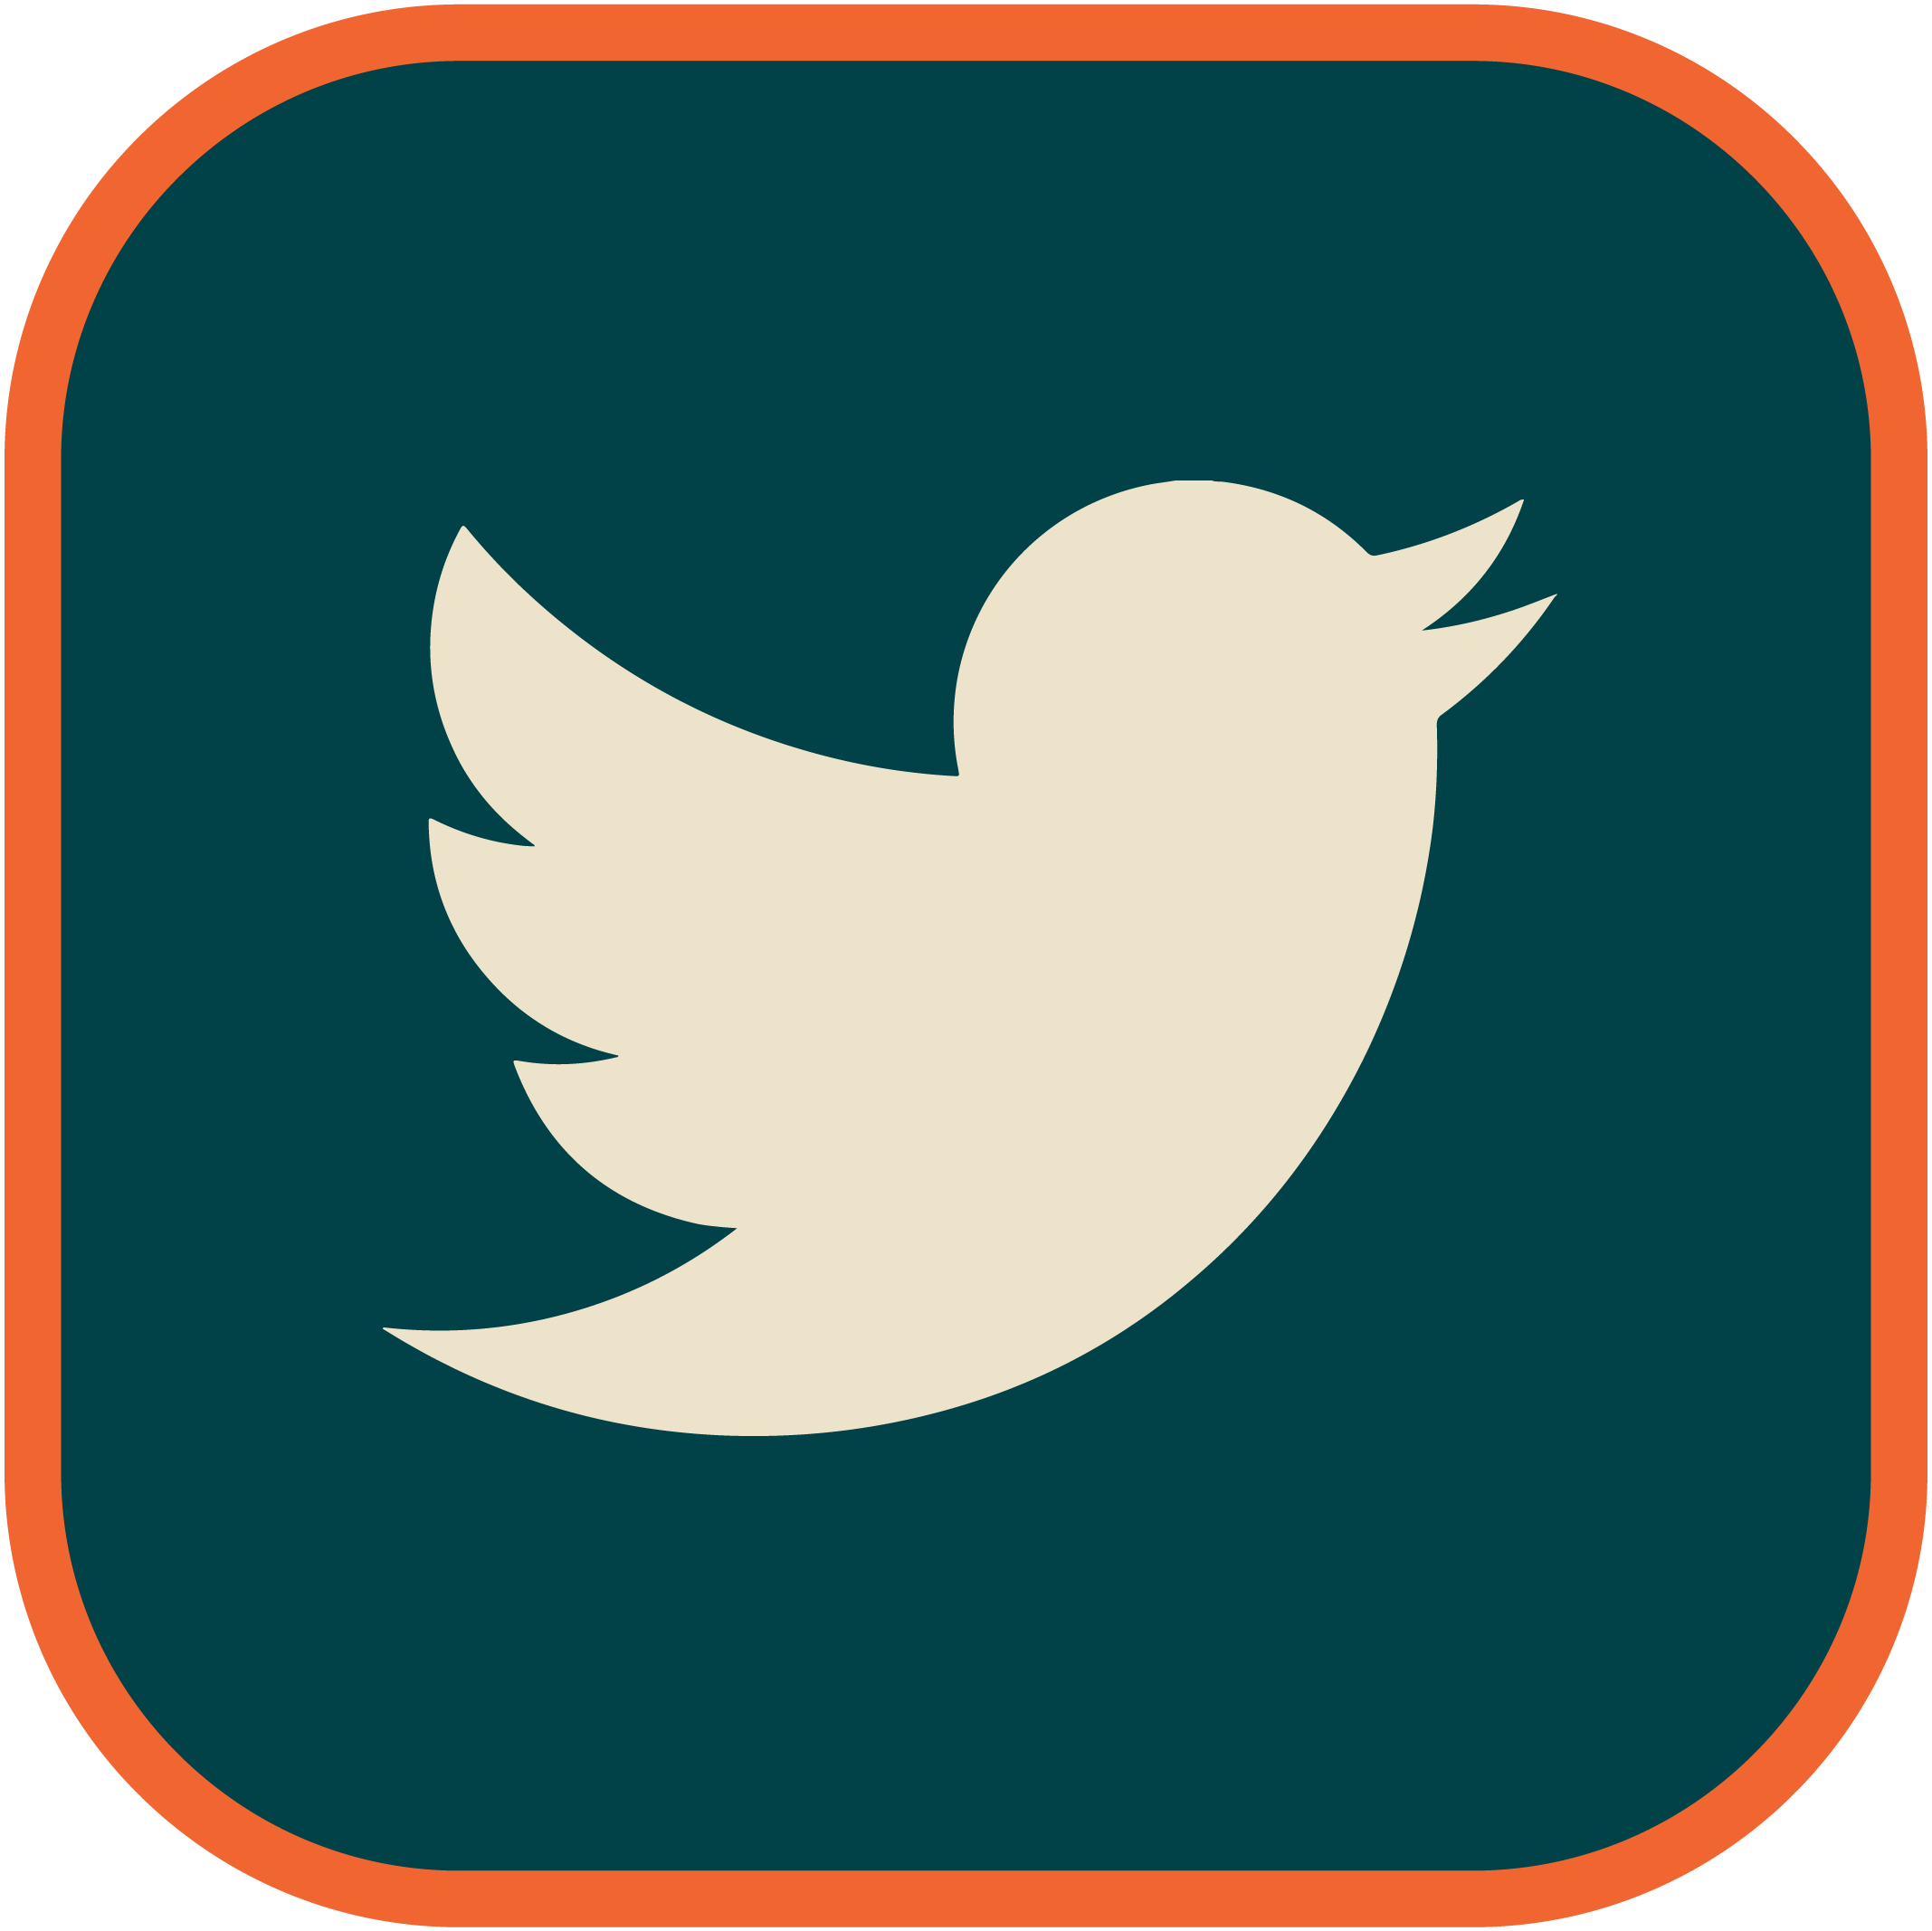 GTD_Rebrand_SocialIcons_twitter.png